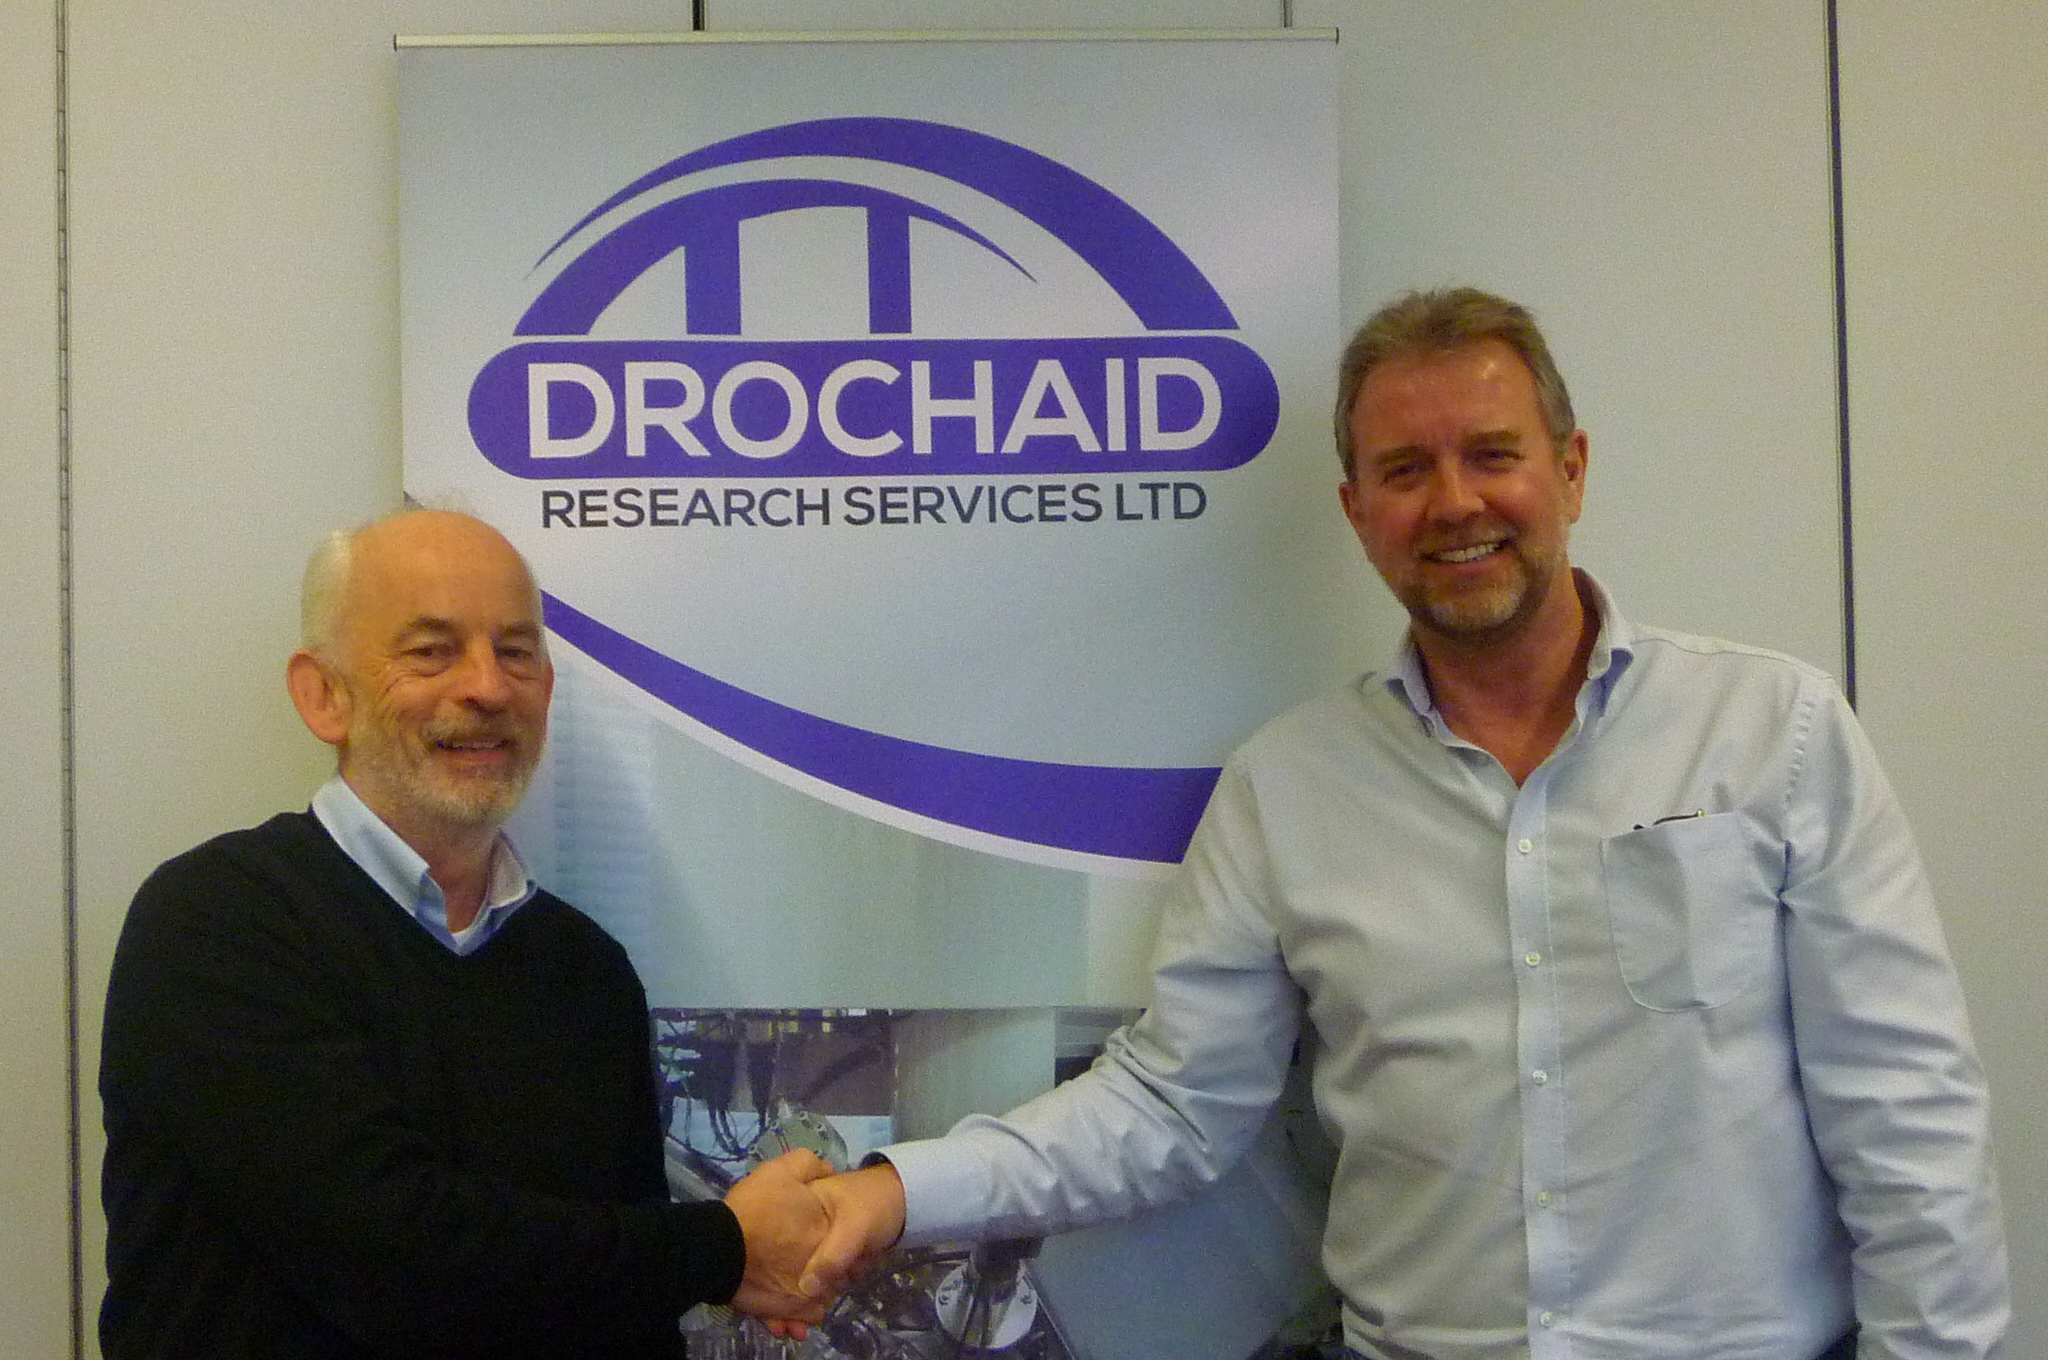 Dr Grant Dench Joins the Team